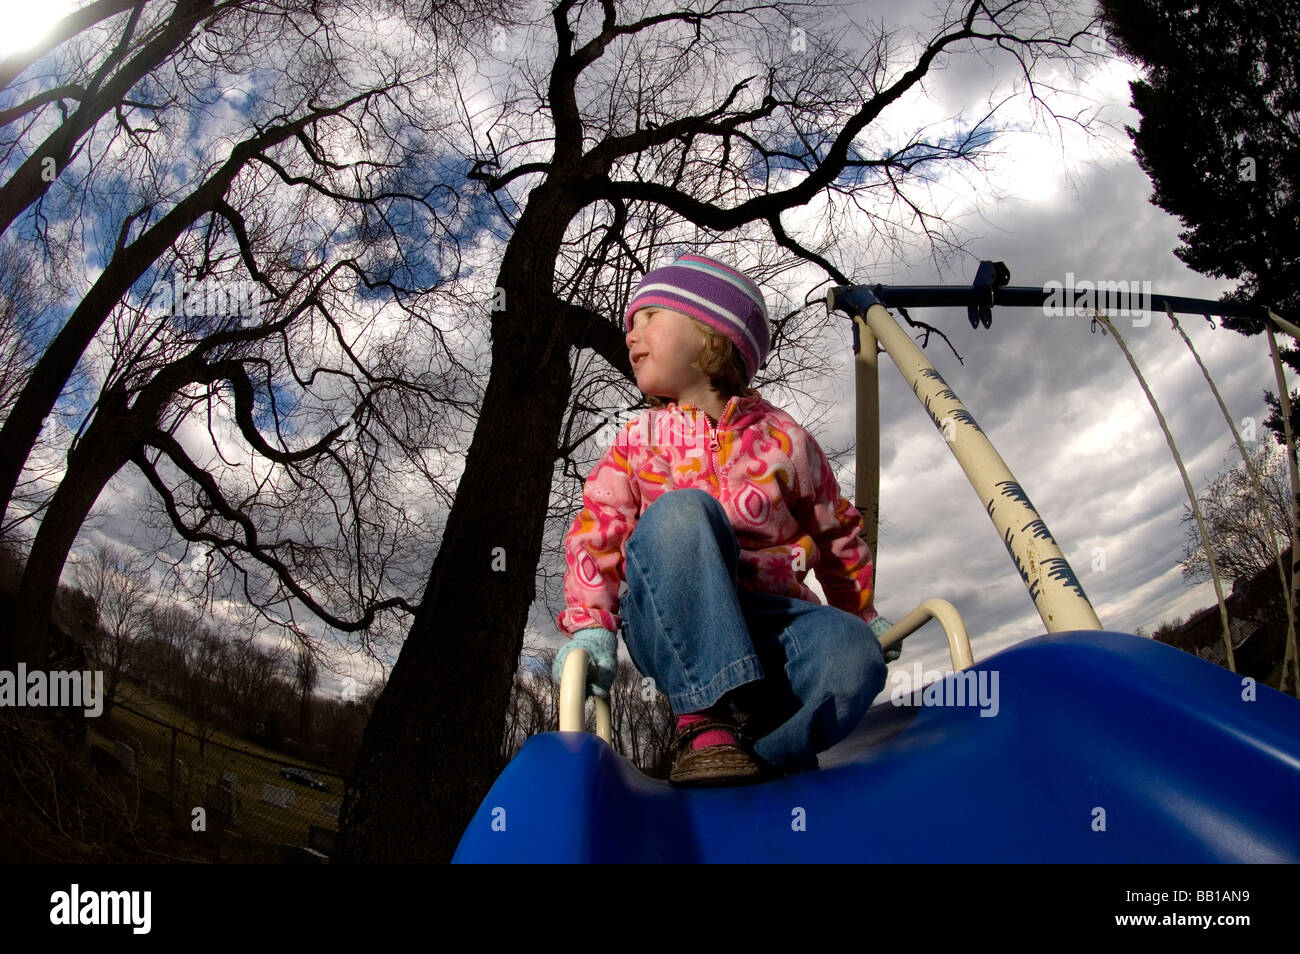 A young girl gets ready to go down a slide during a cool crisp day. - Stock Image